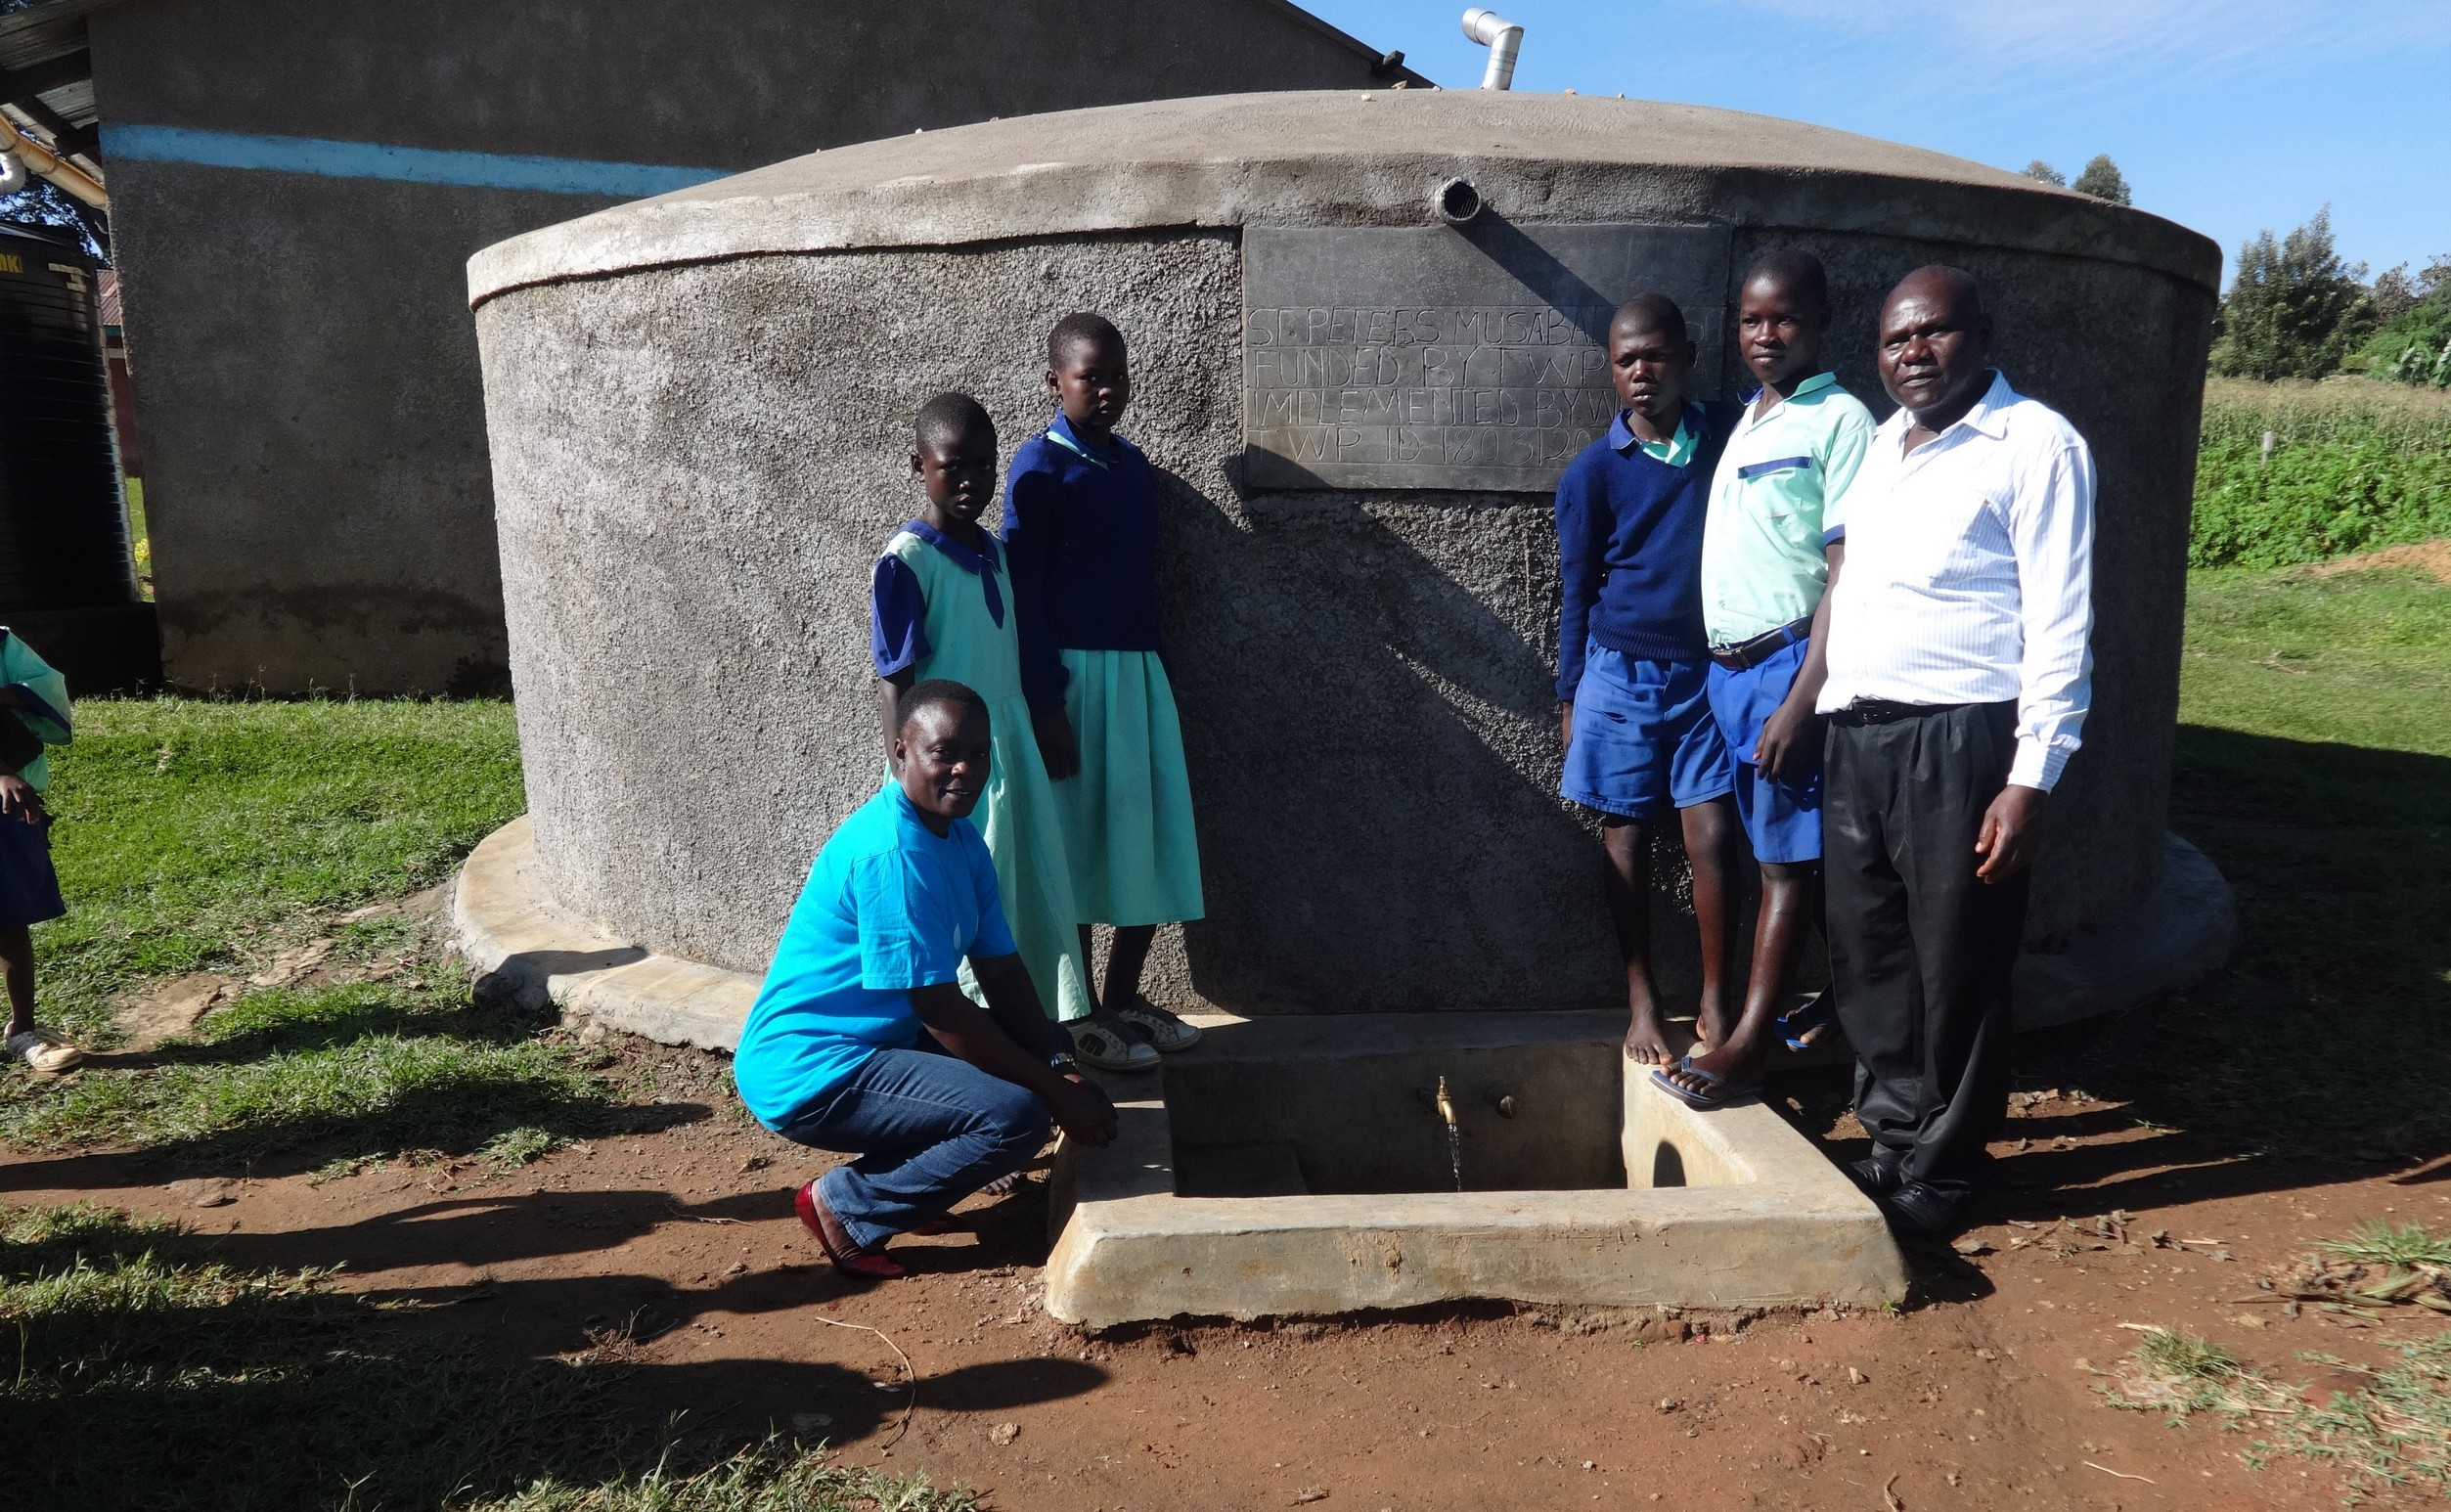 The Water Project : 2-kenya18031-students-and-staff-at-the-rain-tank